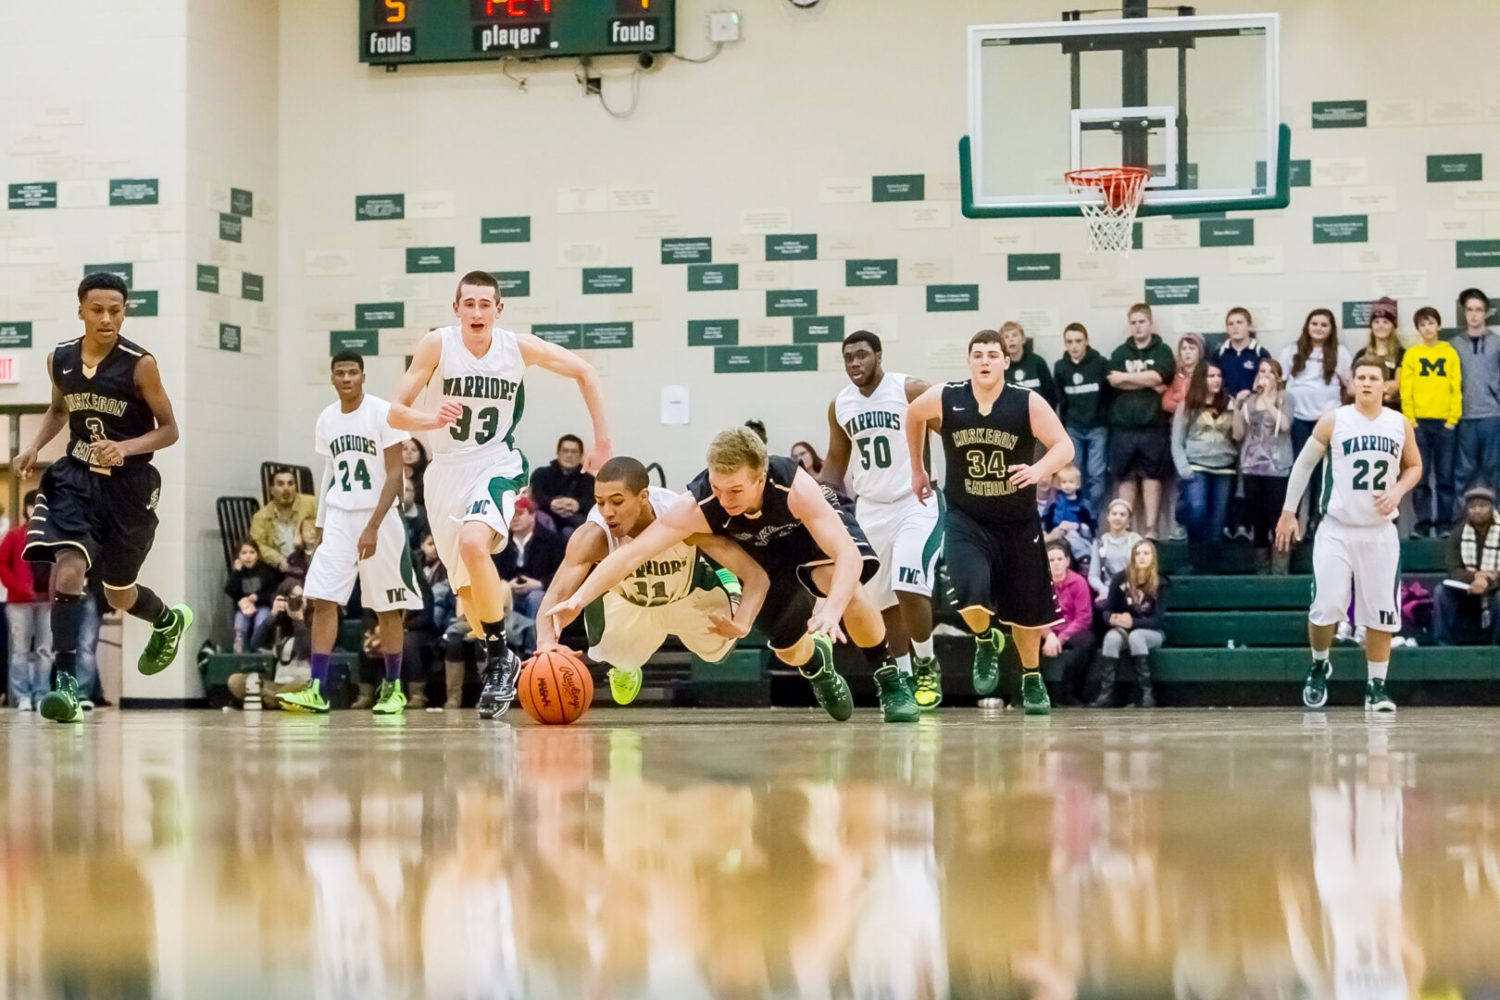 Yes, it was another nailbiter as Western Michigan Christian boys defeat Muskegon Catholic in key River Valley contest